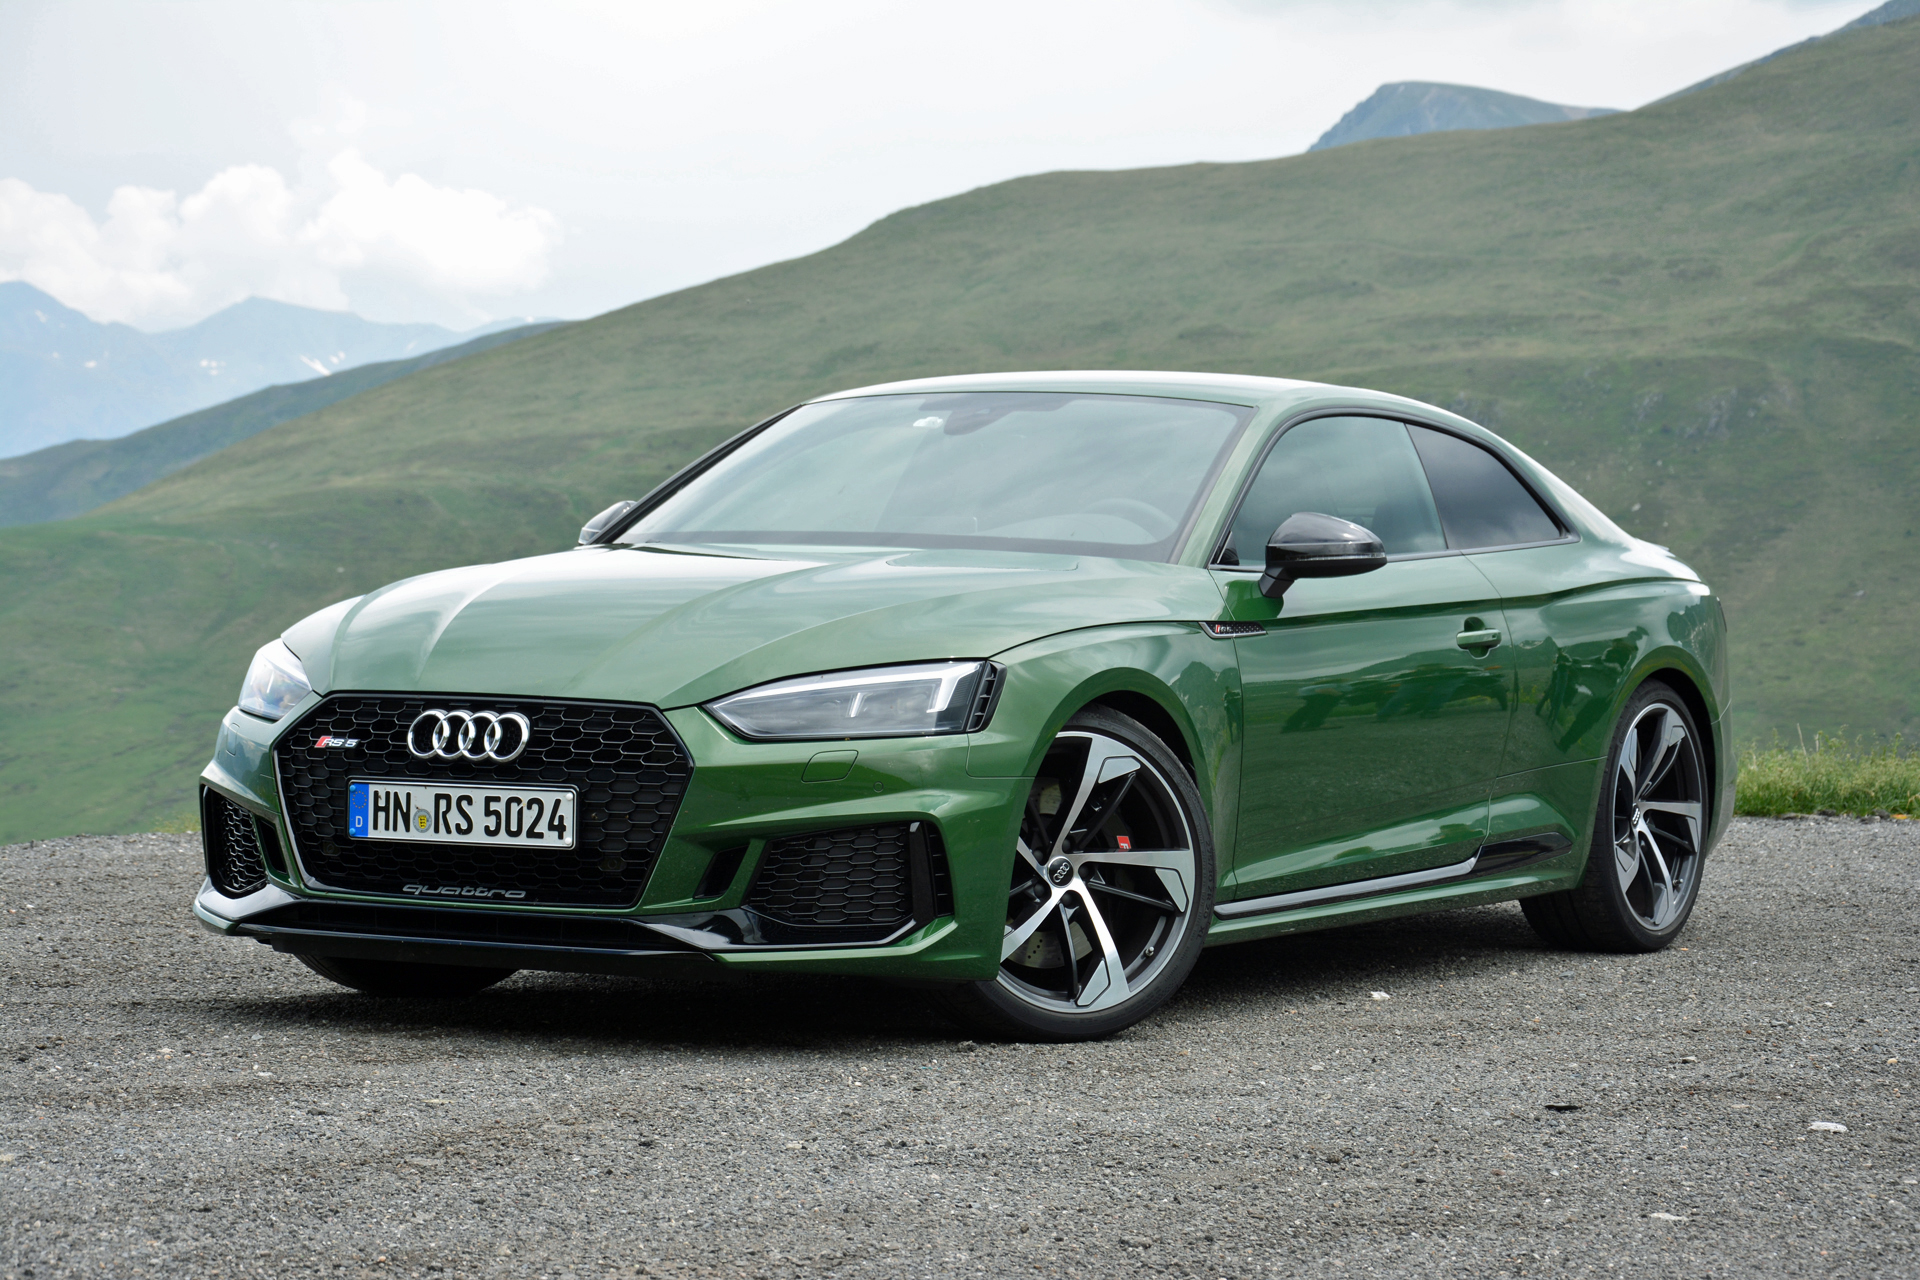 2018 Audi RS 5 First Drive Review: Green With Mean (Page 3